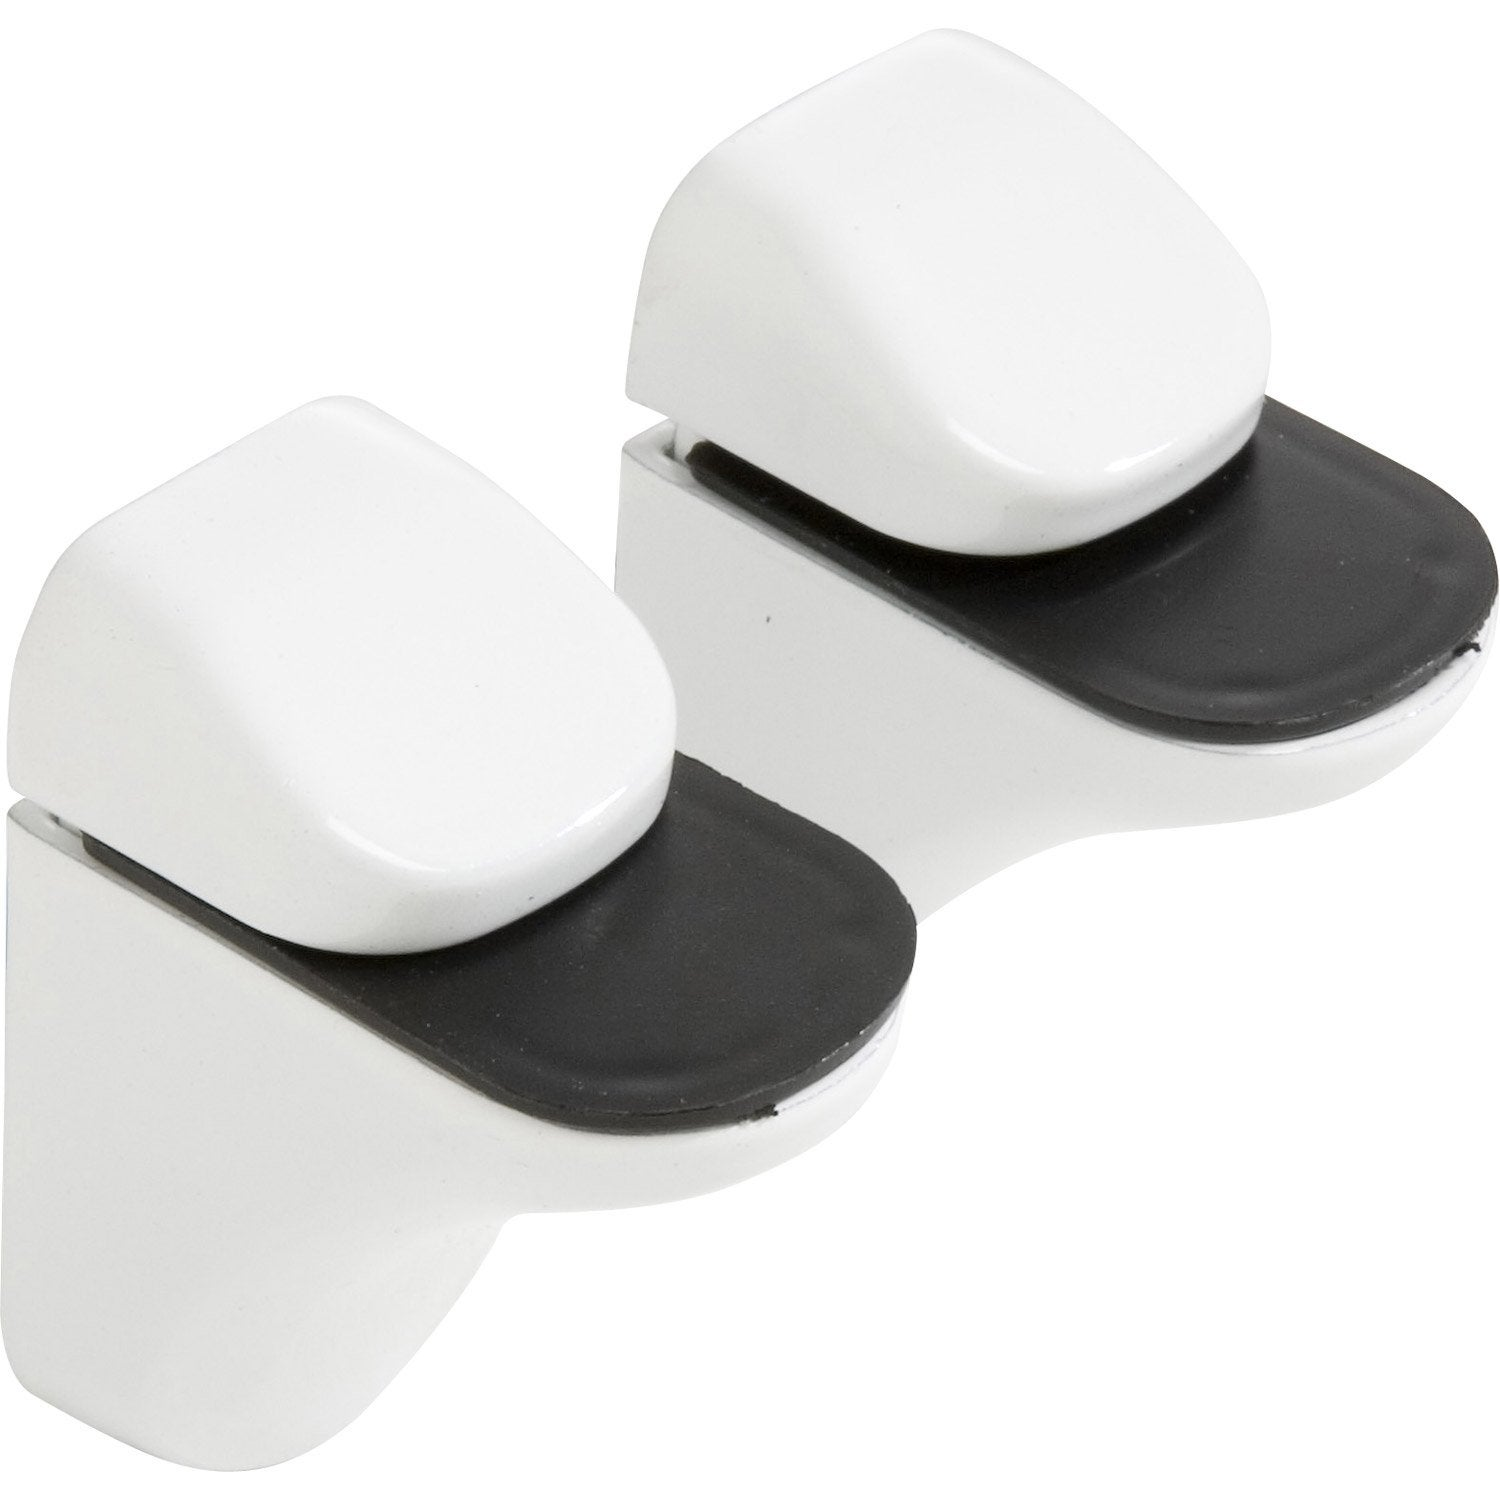 Lot de 2 supports tablette pince blanc laqu leroy merlin - Tablette chene leroy merlin ...